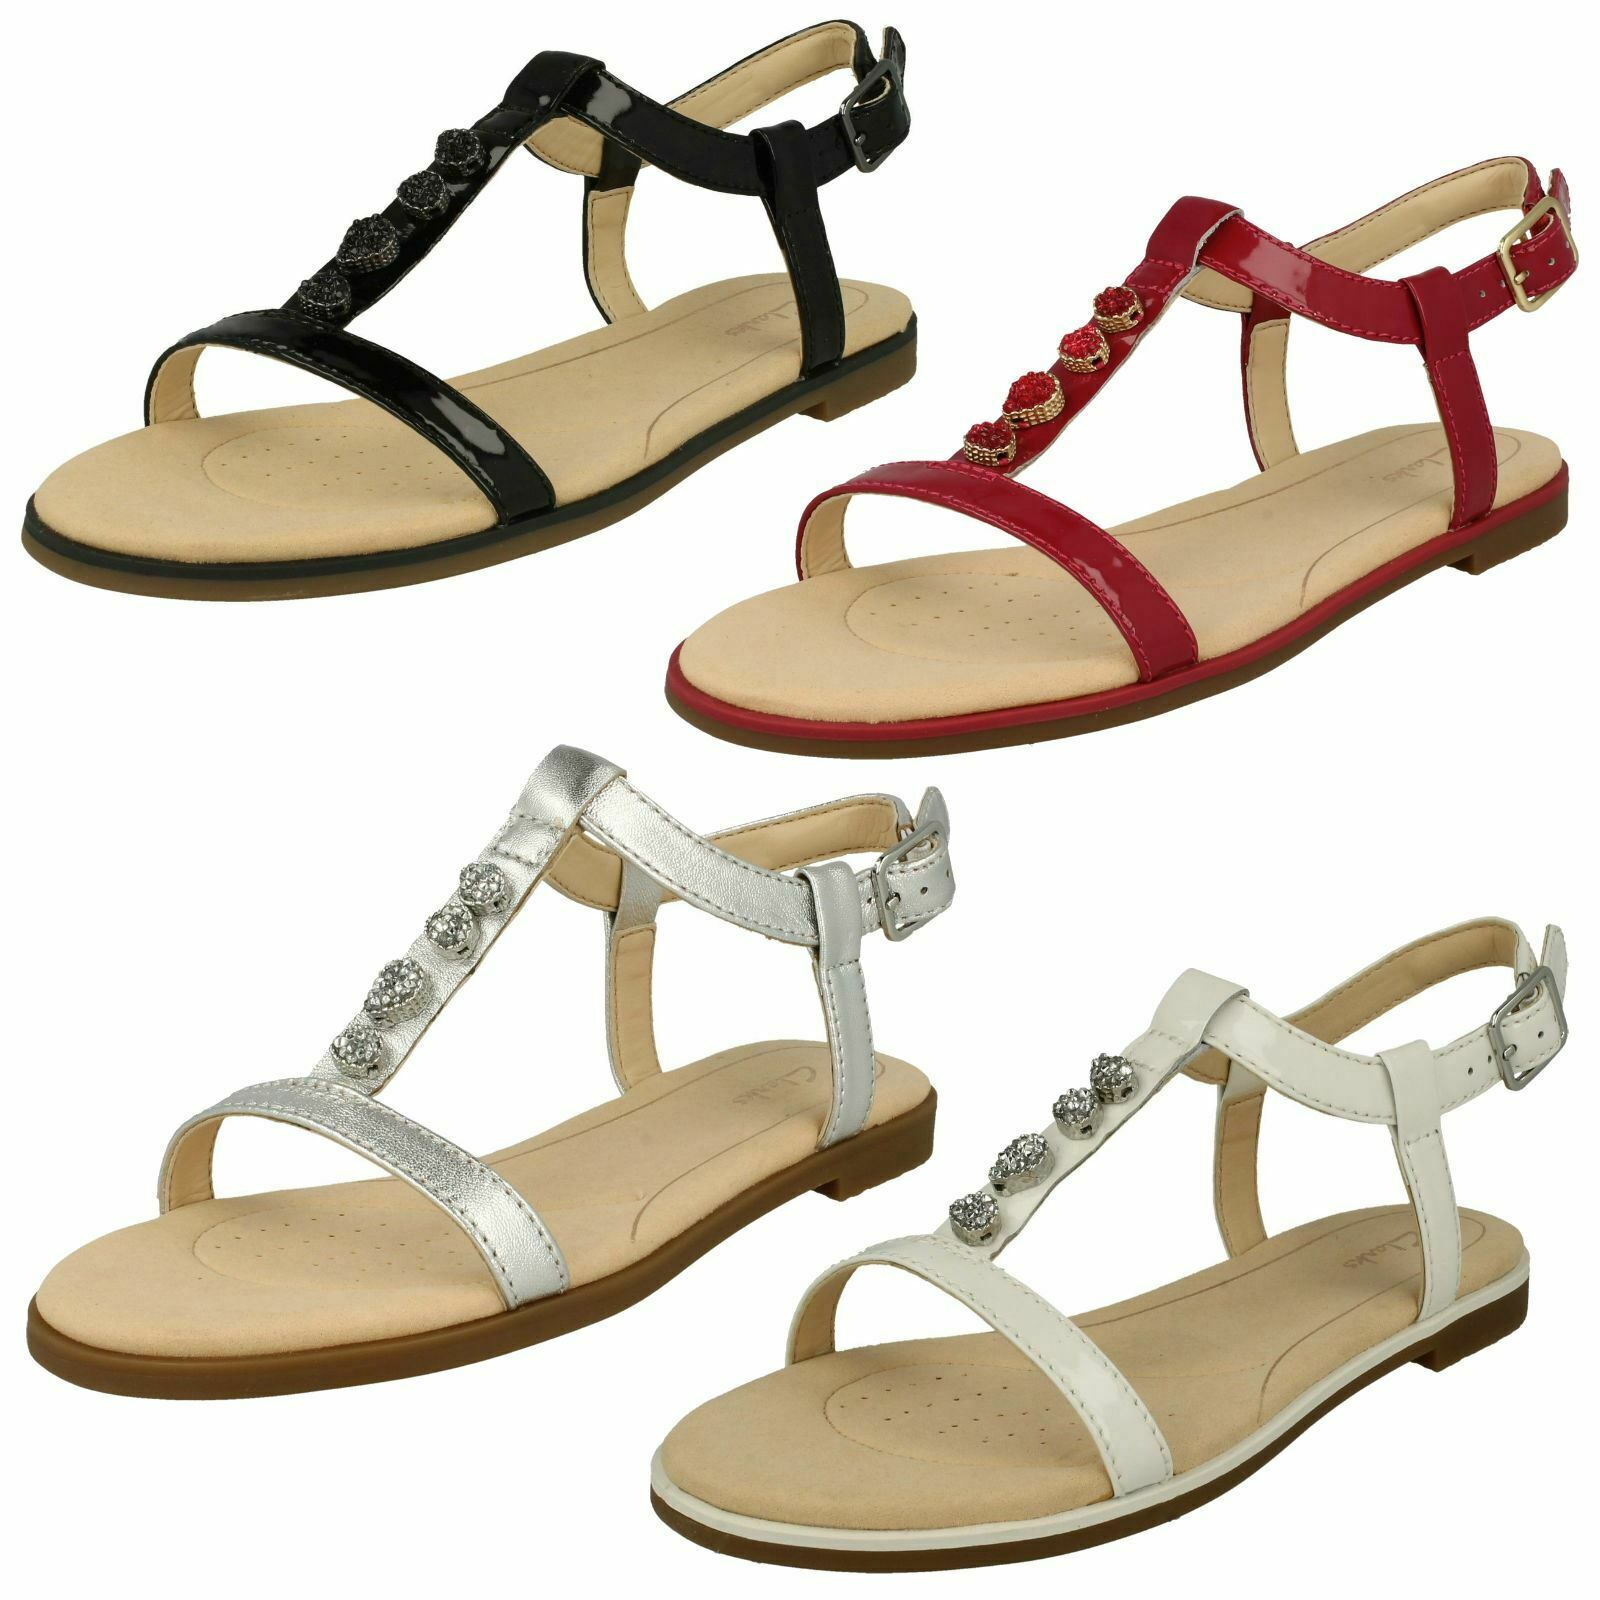 Ladies Clarks Bay Blossom Casual Slingback Sandals